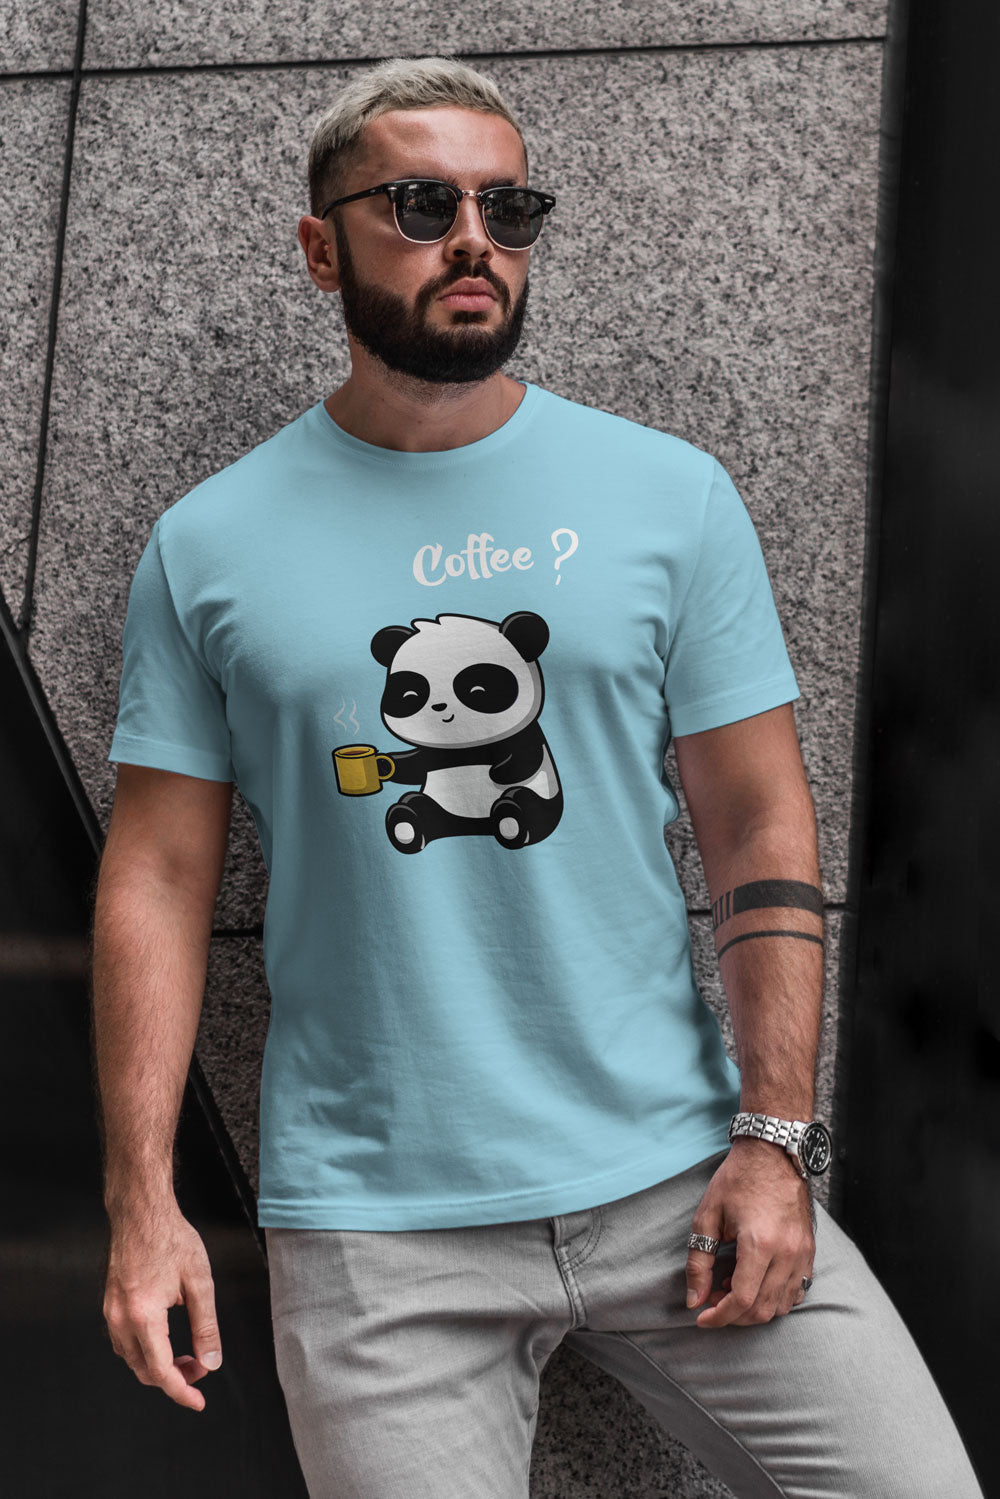 Coffee Panda T-Shirt For Men